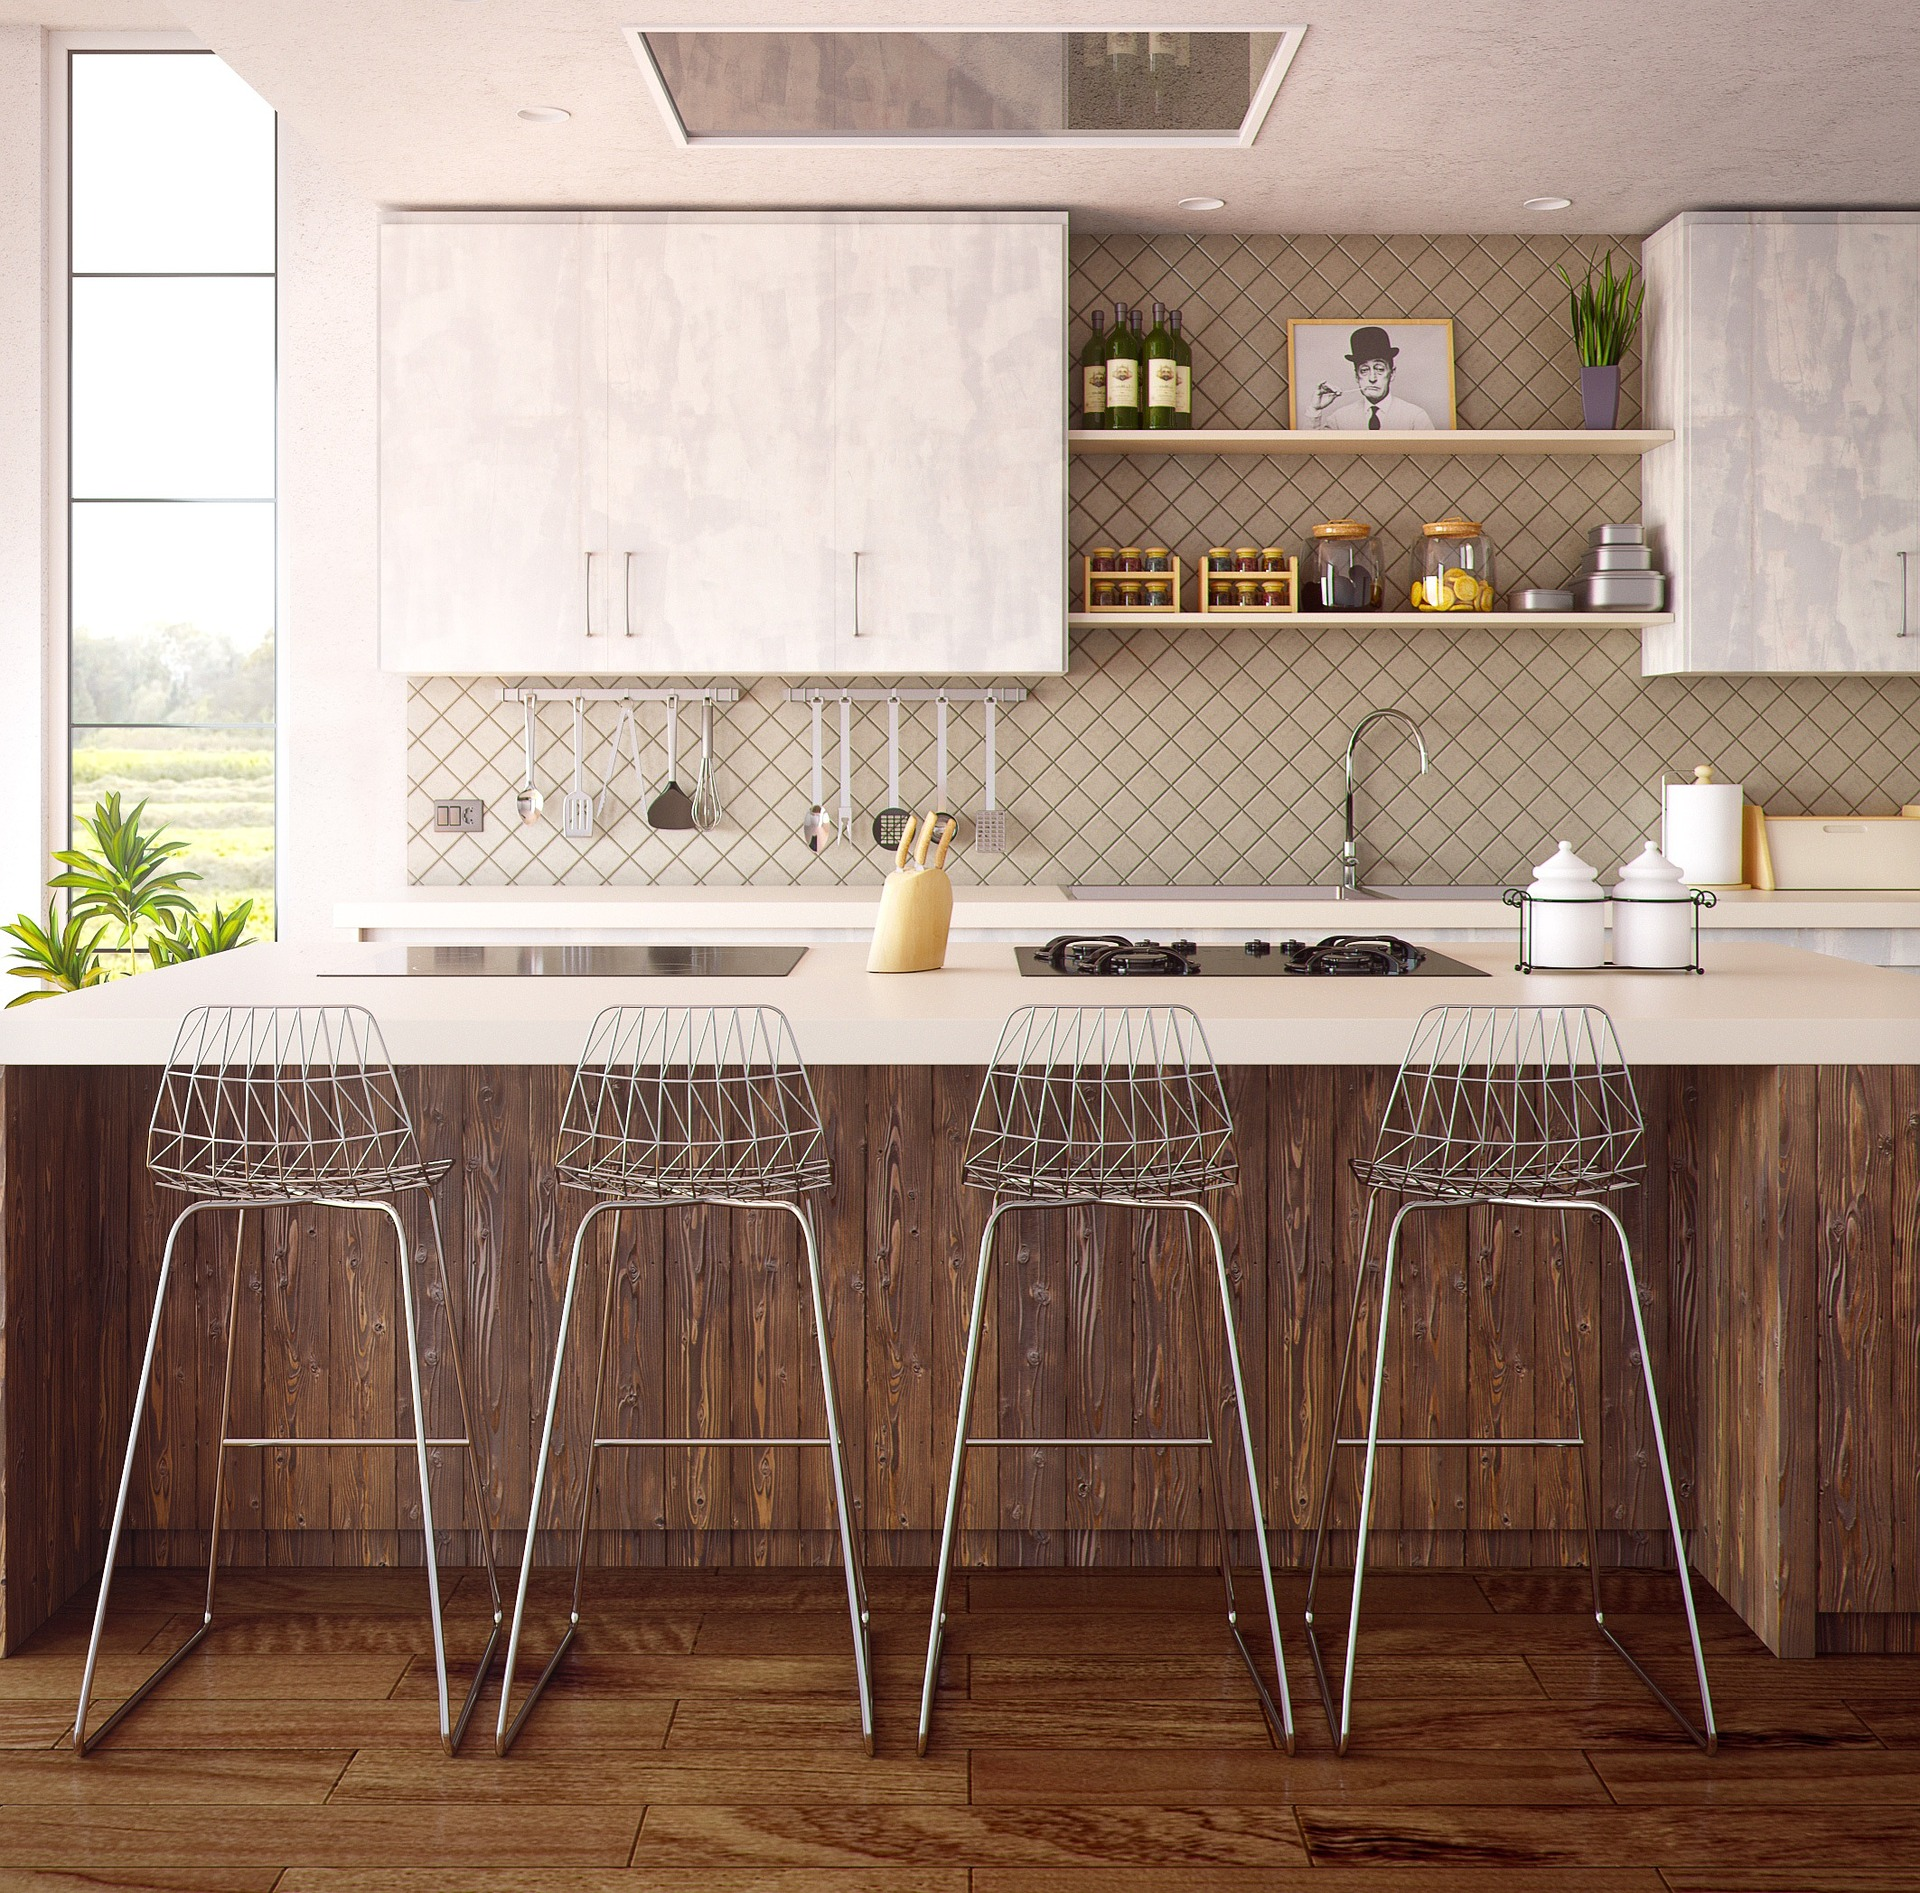 Home staging cuisine - idee-deco-maison.fr